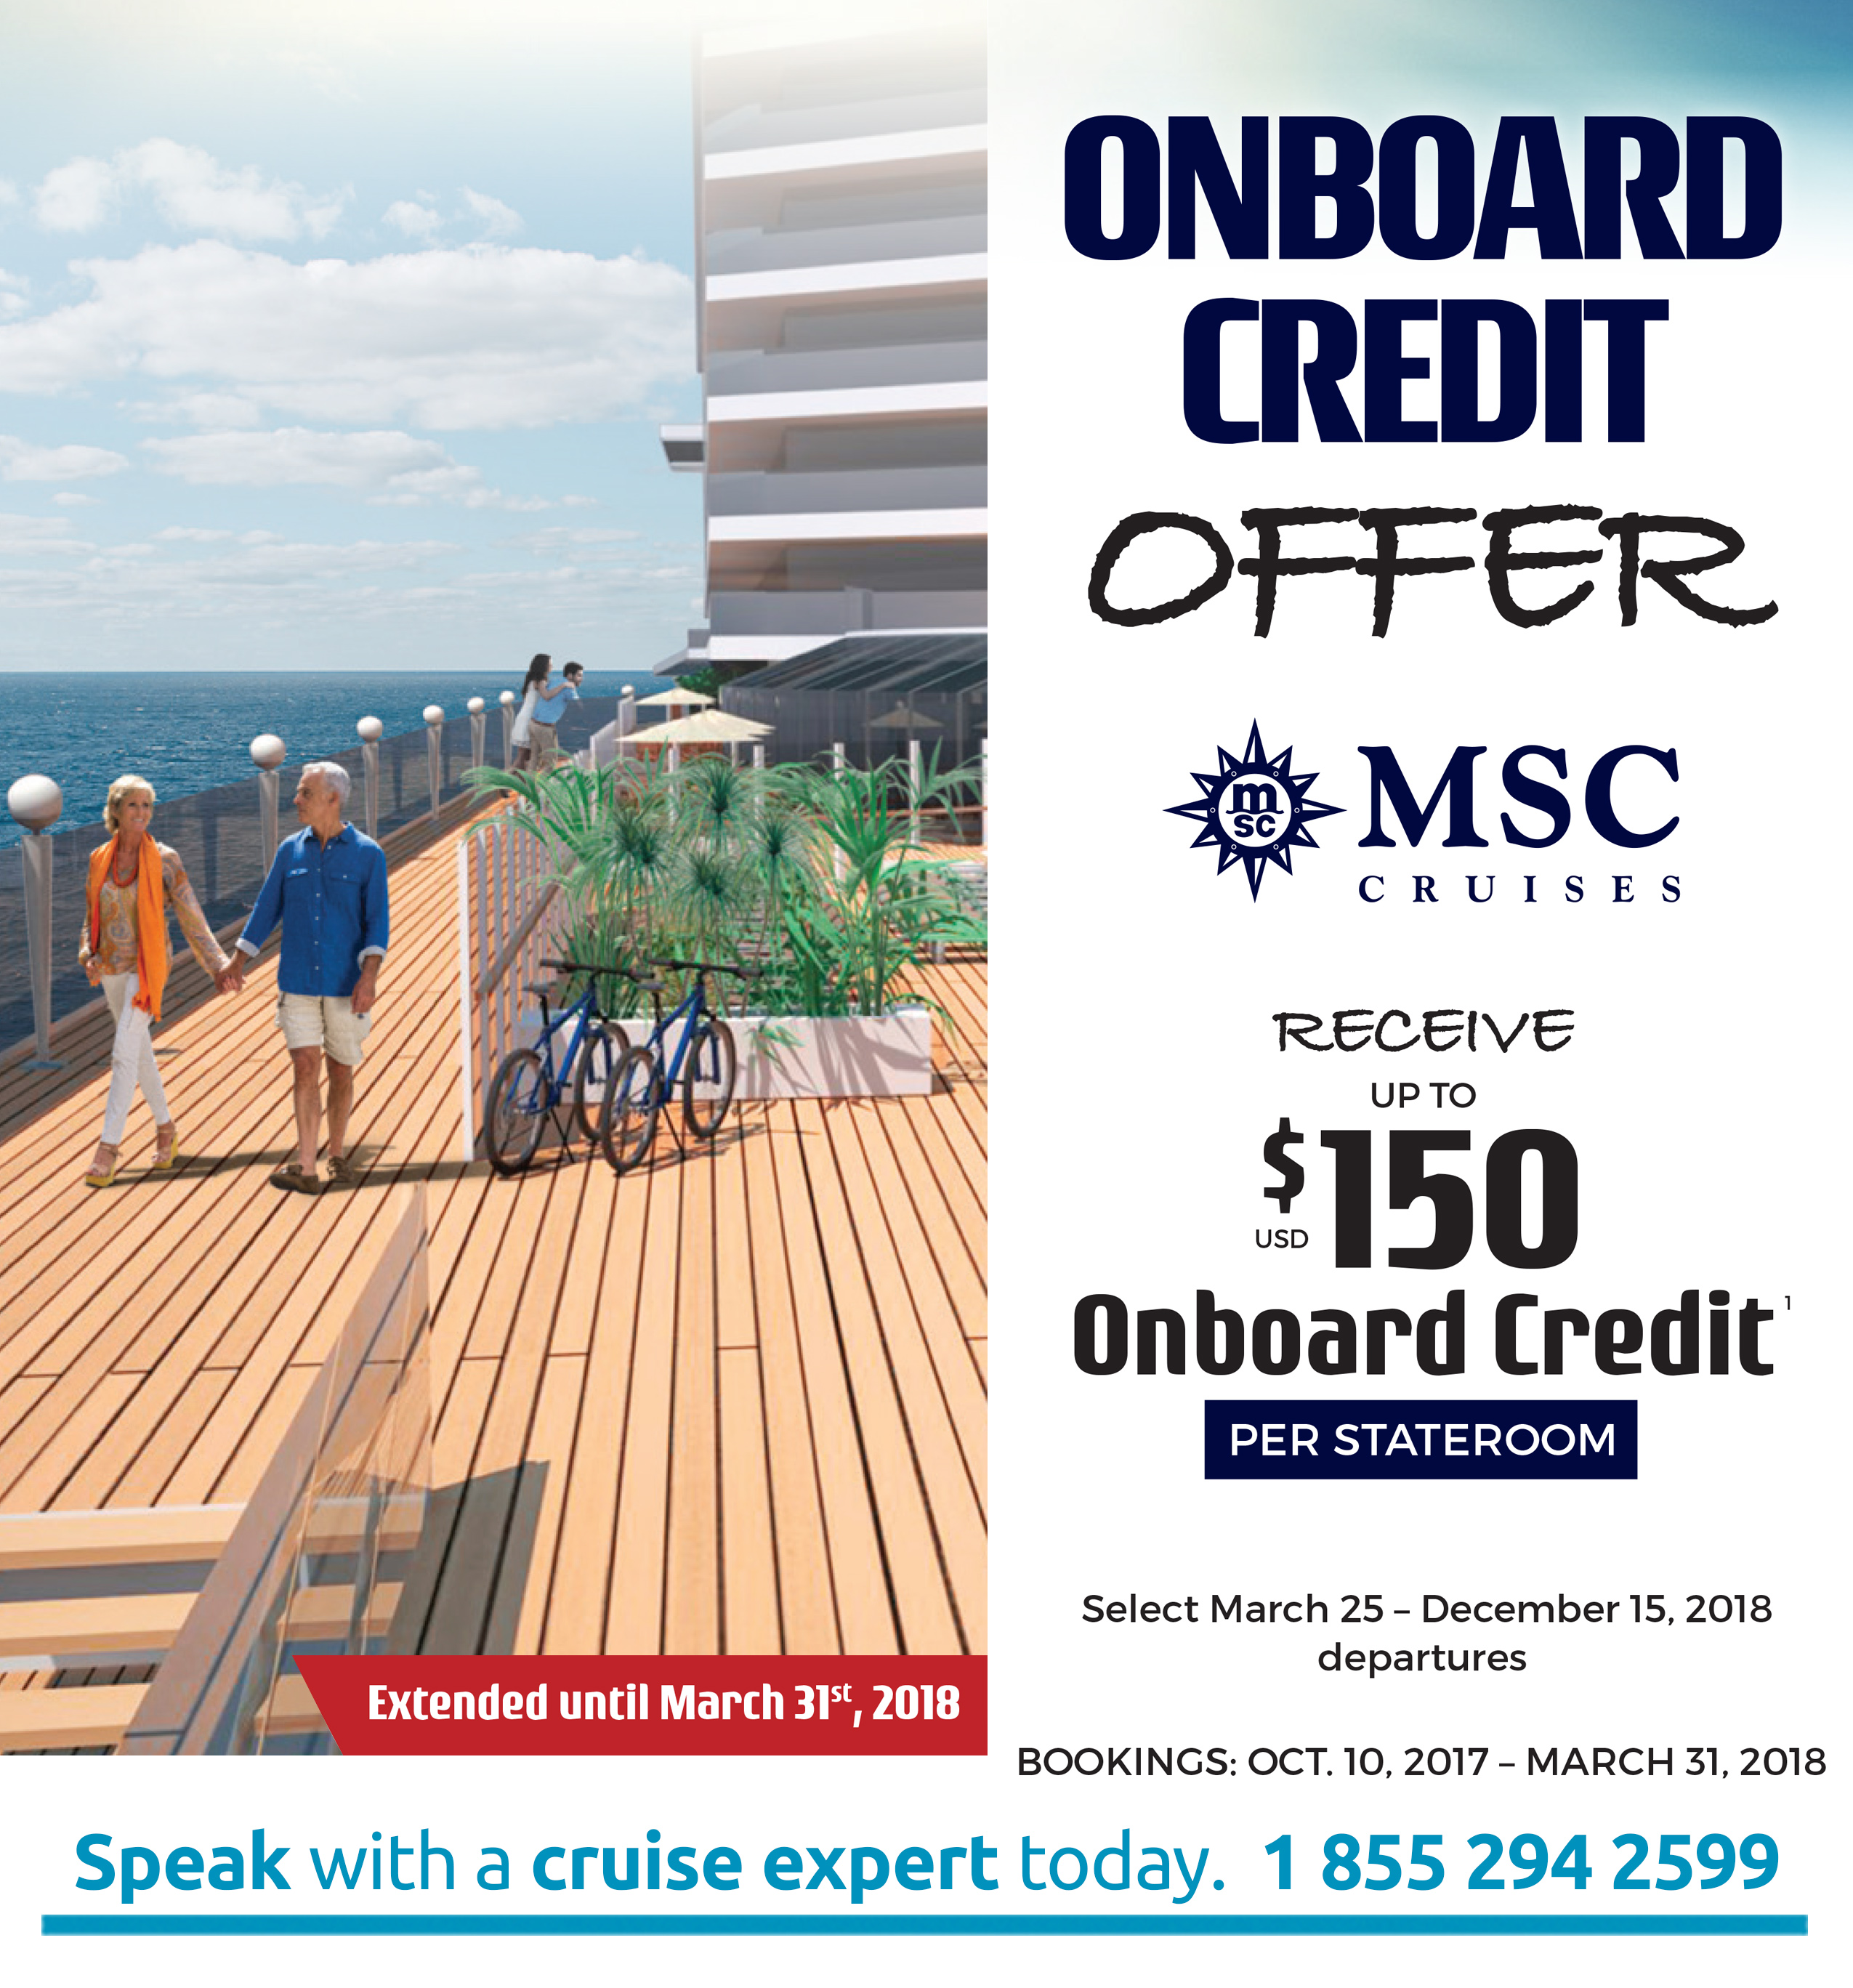 Cruise packages on the MSC Cruises